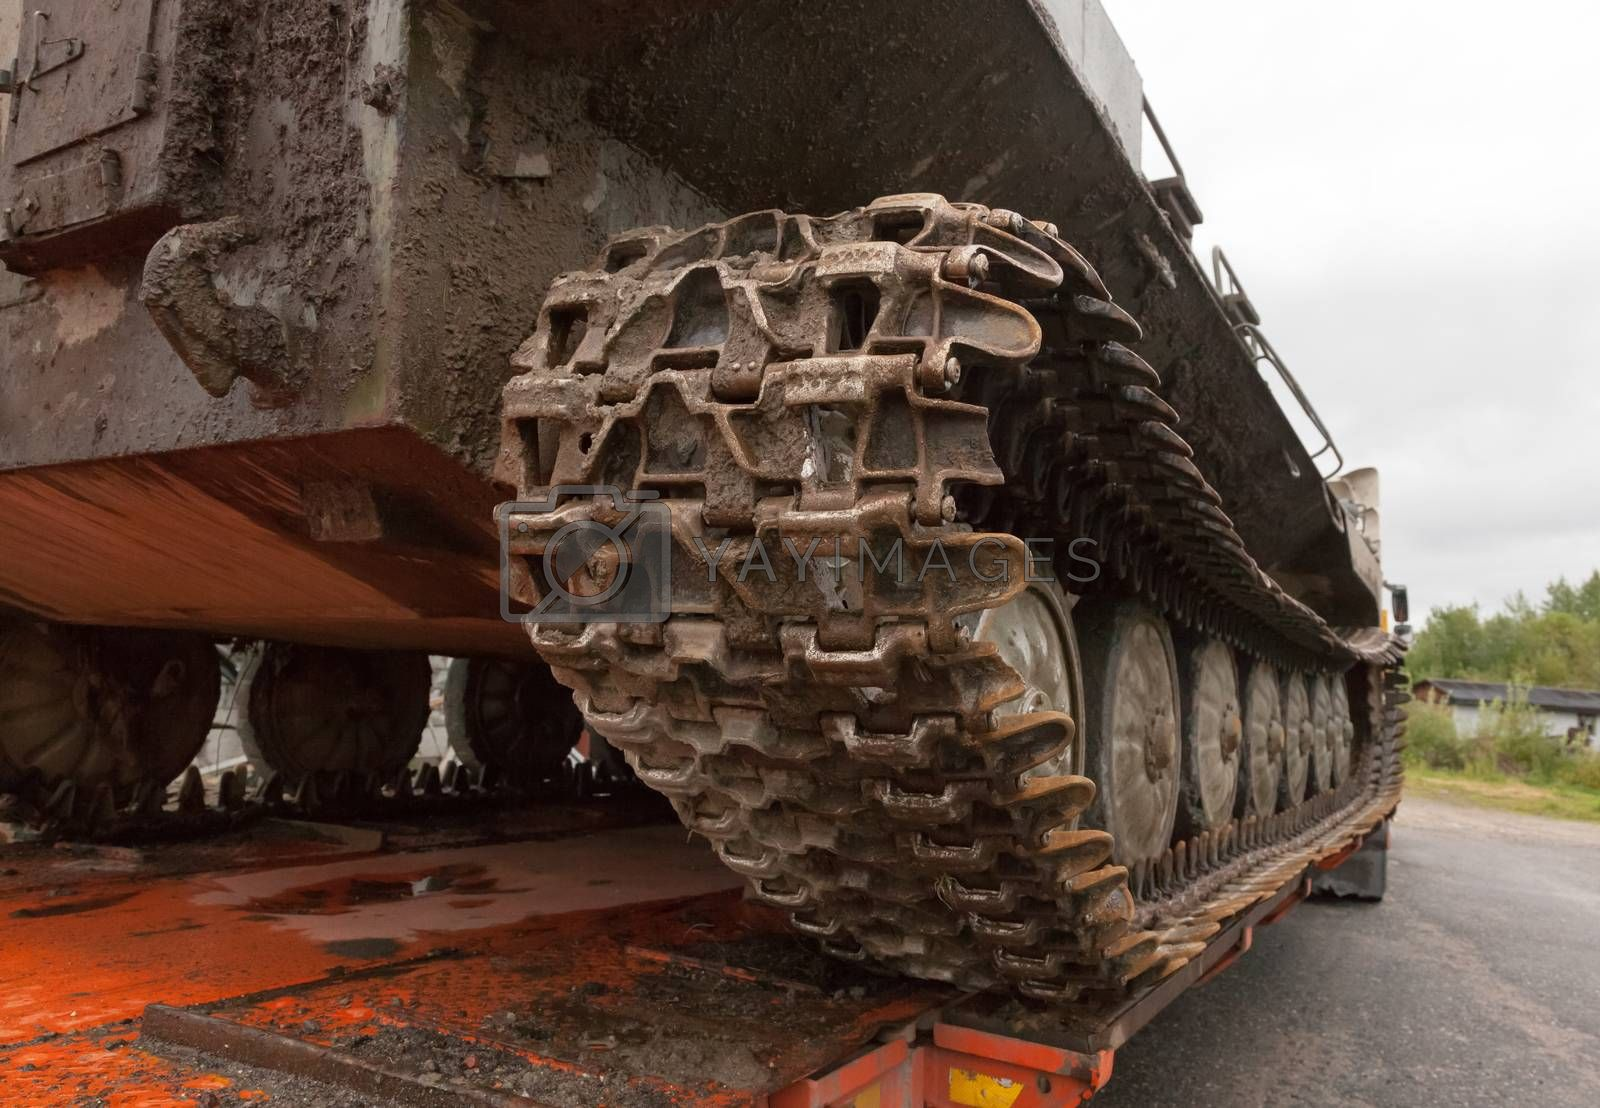 The tracked vehicle pulled into the trawl for transportation to a destination